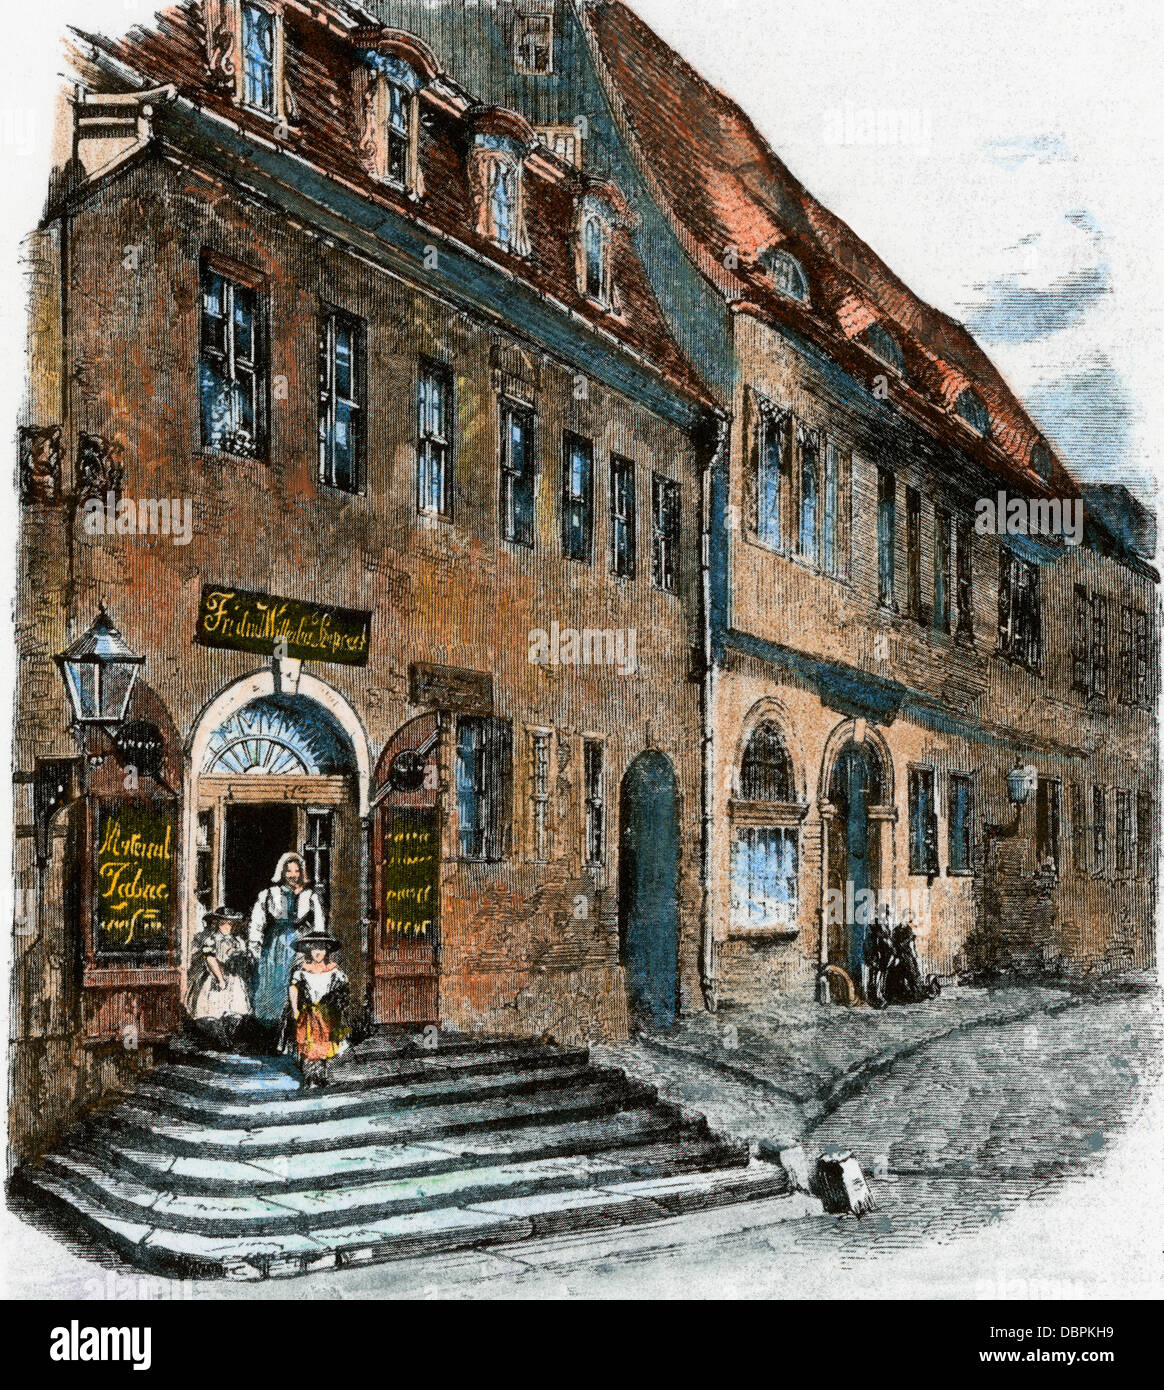 Birthplace of Georg Friedrich Handel at Halle, Saxony, in Germany. Hand-colored woodcut - Stock Image